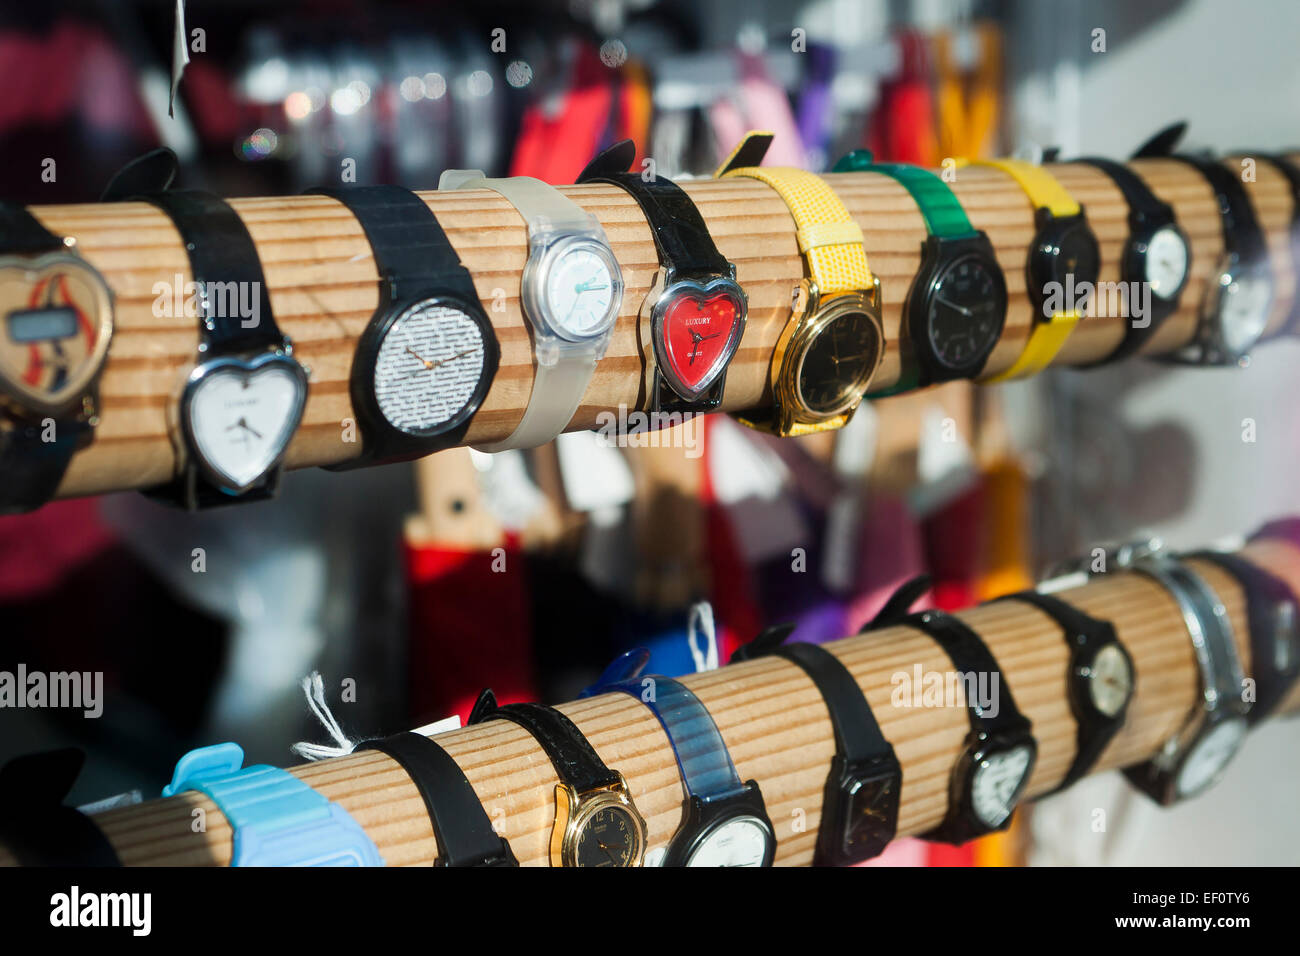 Wristwatches in store window display - USA - Stock Image